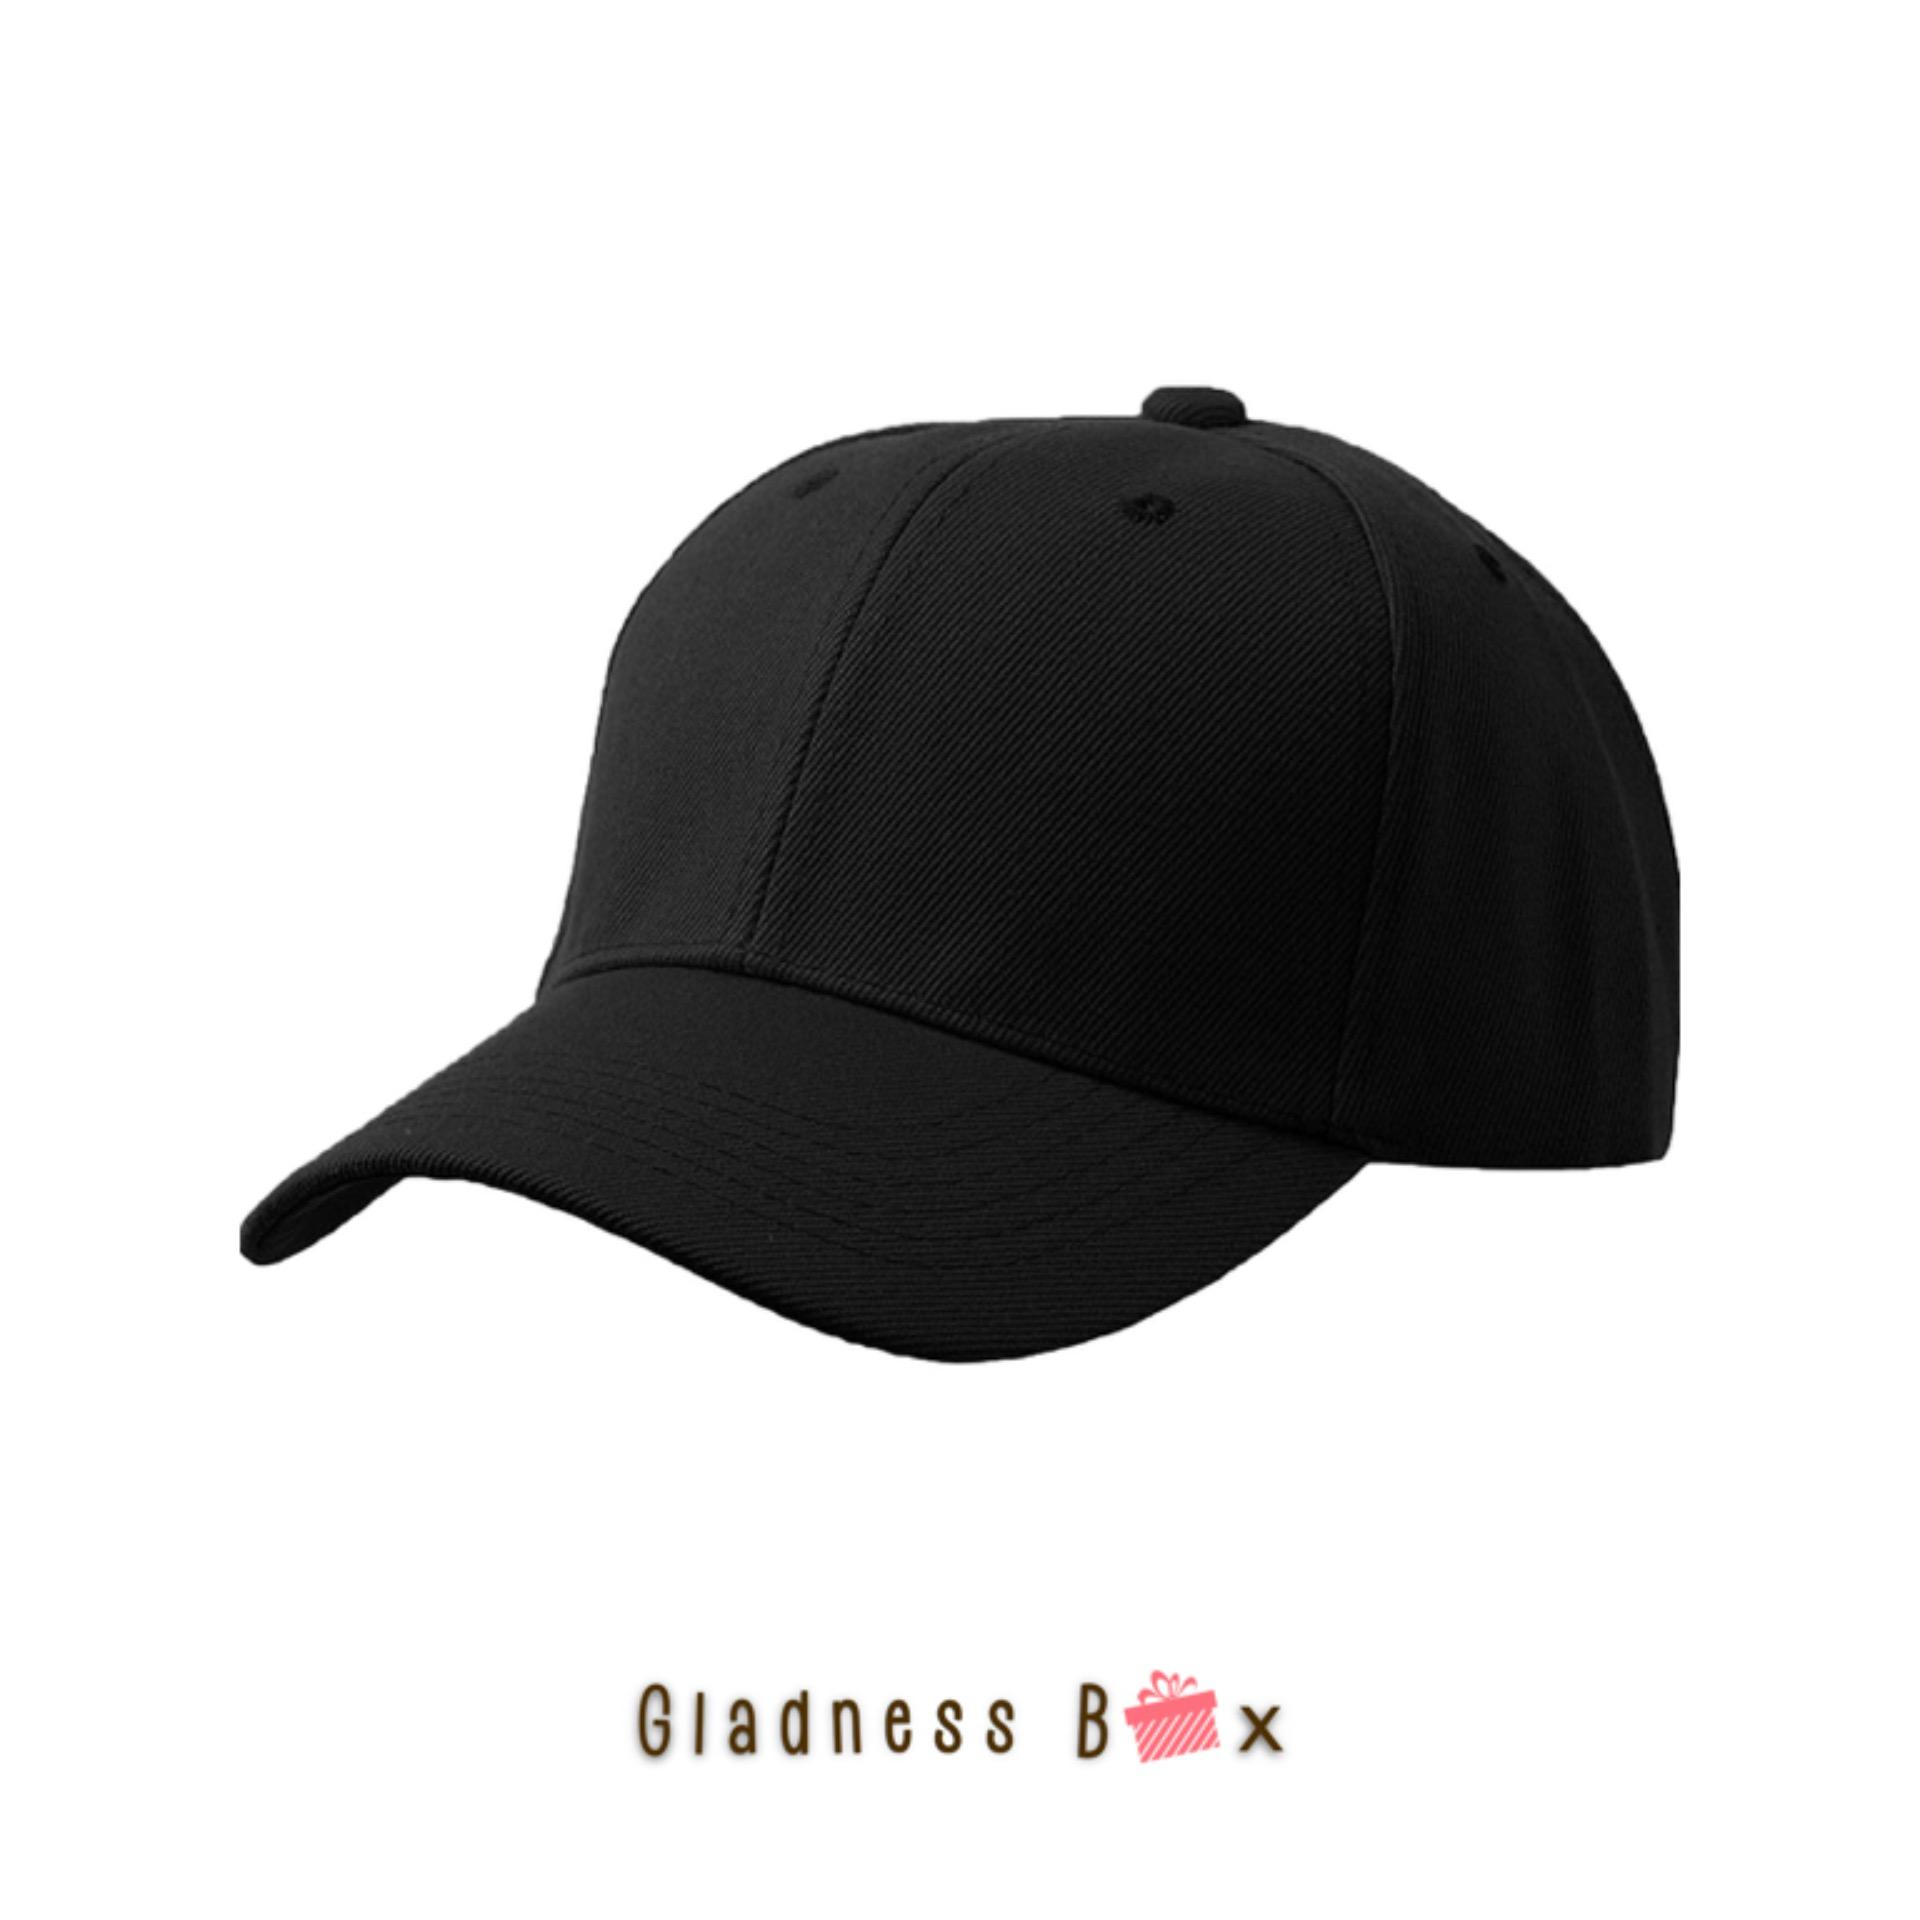 7b1d14ed58d Gladness Box High Quality Plain Baseball Cap for Men Women Unisex